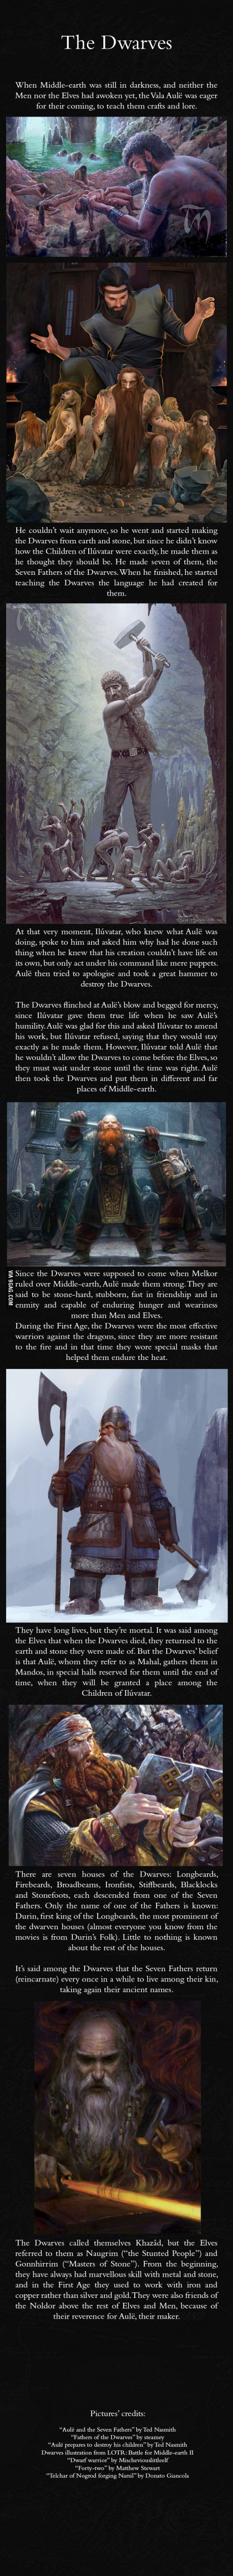 Dwarves - J.R.R. Tolkien's Mythology. It kind of reminds me of Biblical reference to Abraham and Isaac.